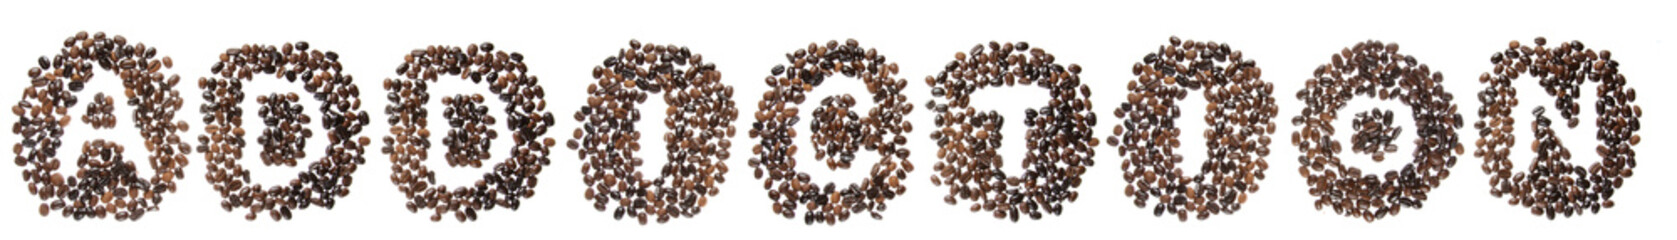 Coffe beans used to spell the word addiction